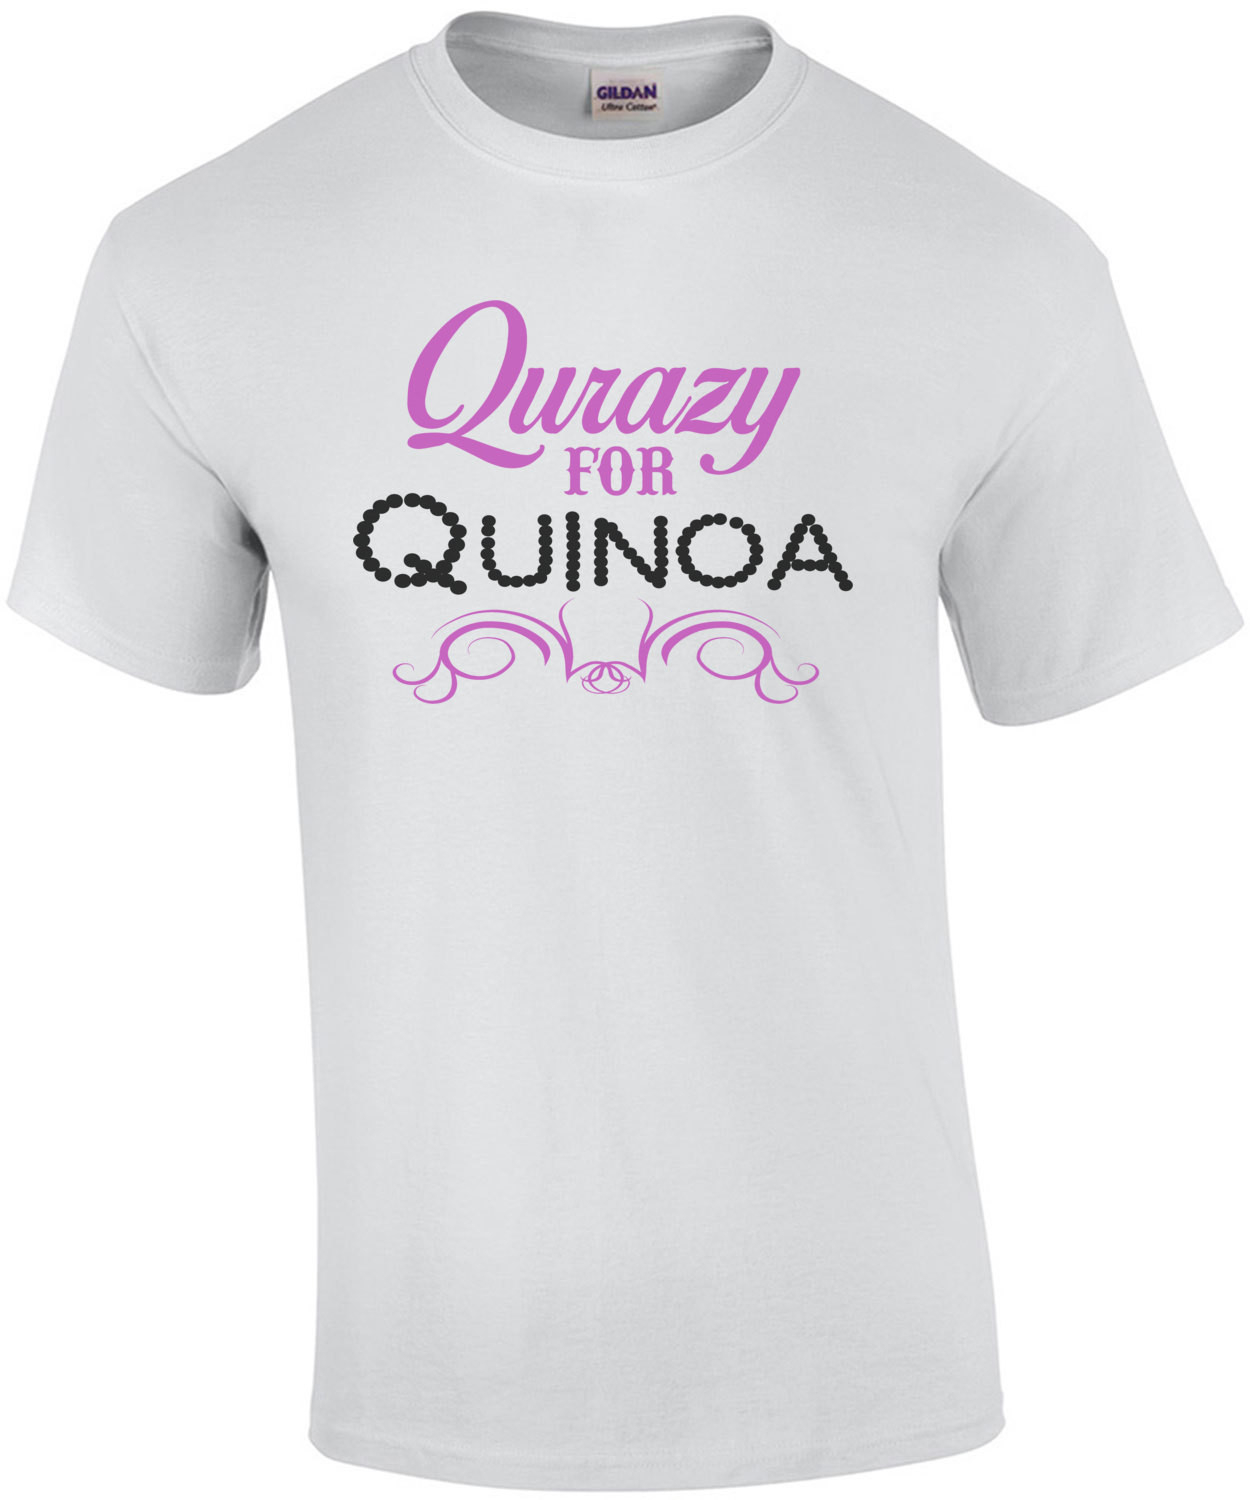 Qurazy For Quinoa T-Shirt